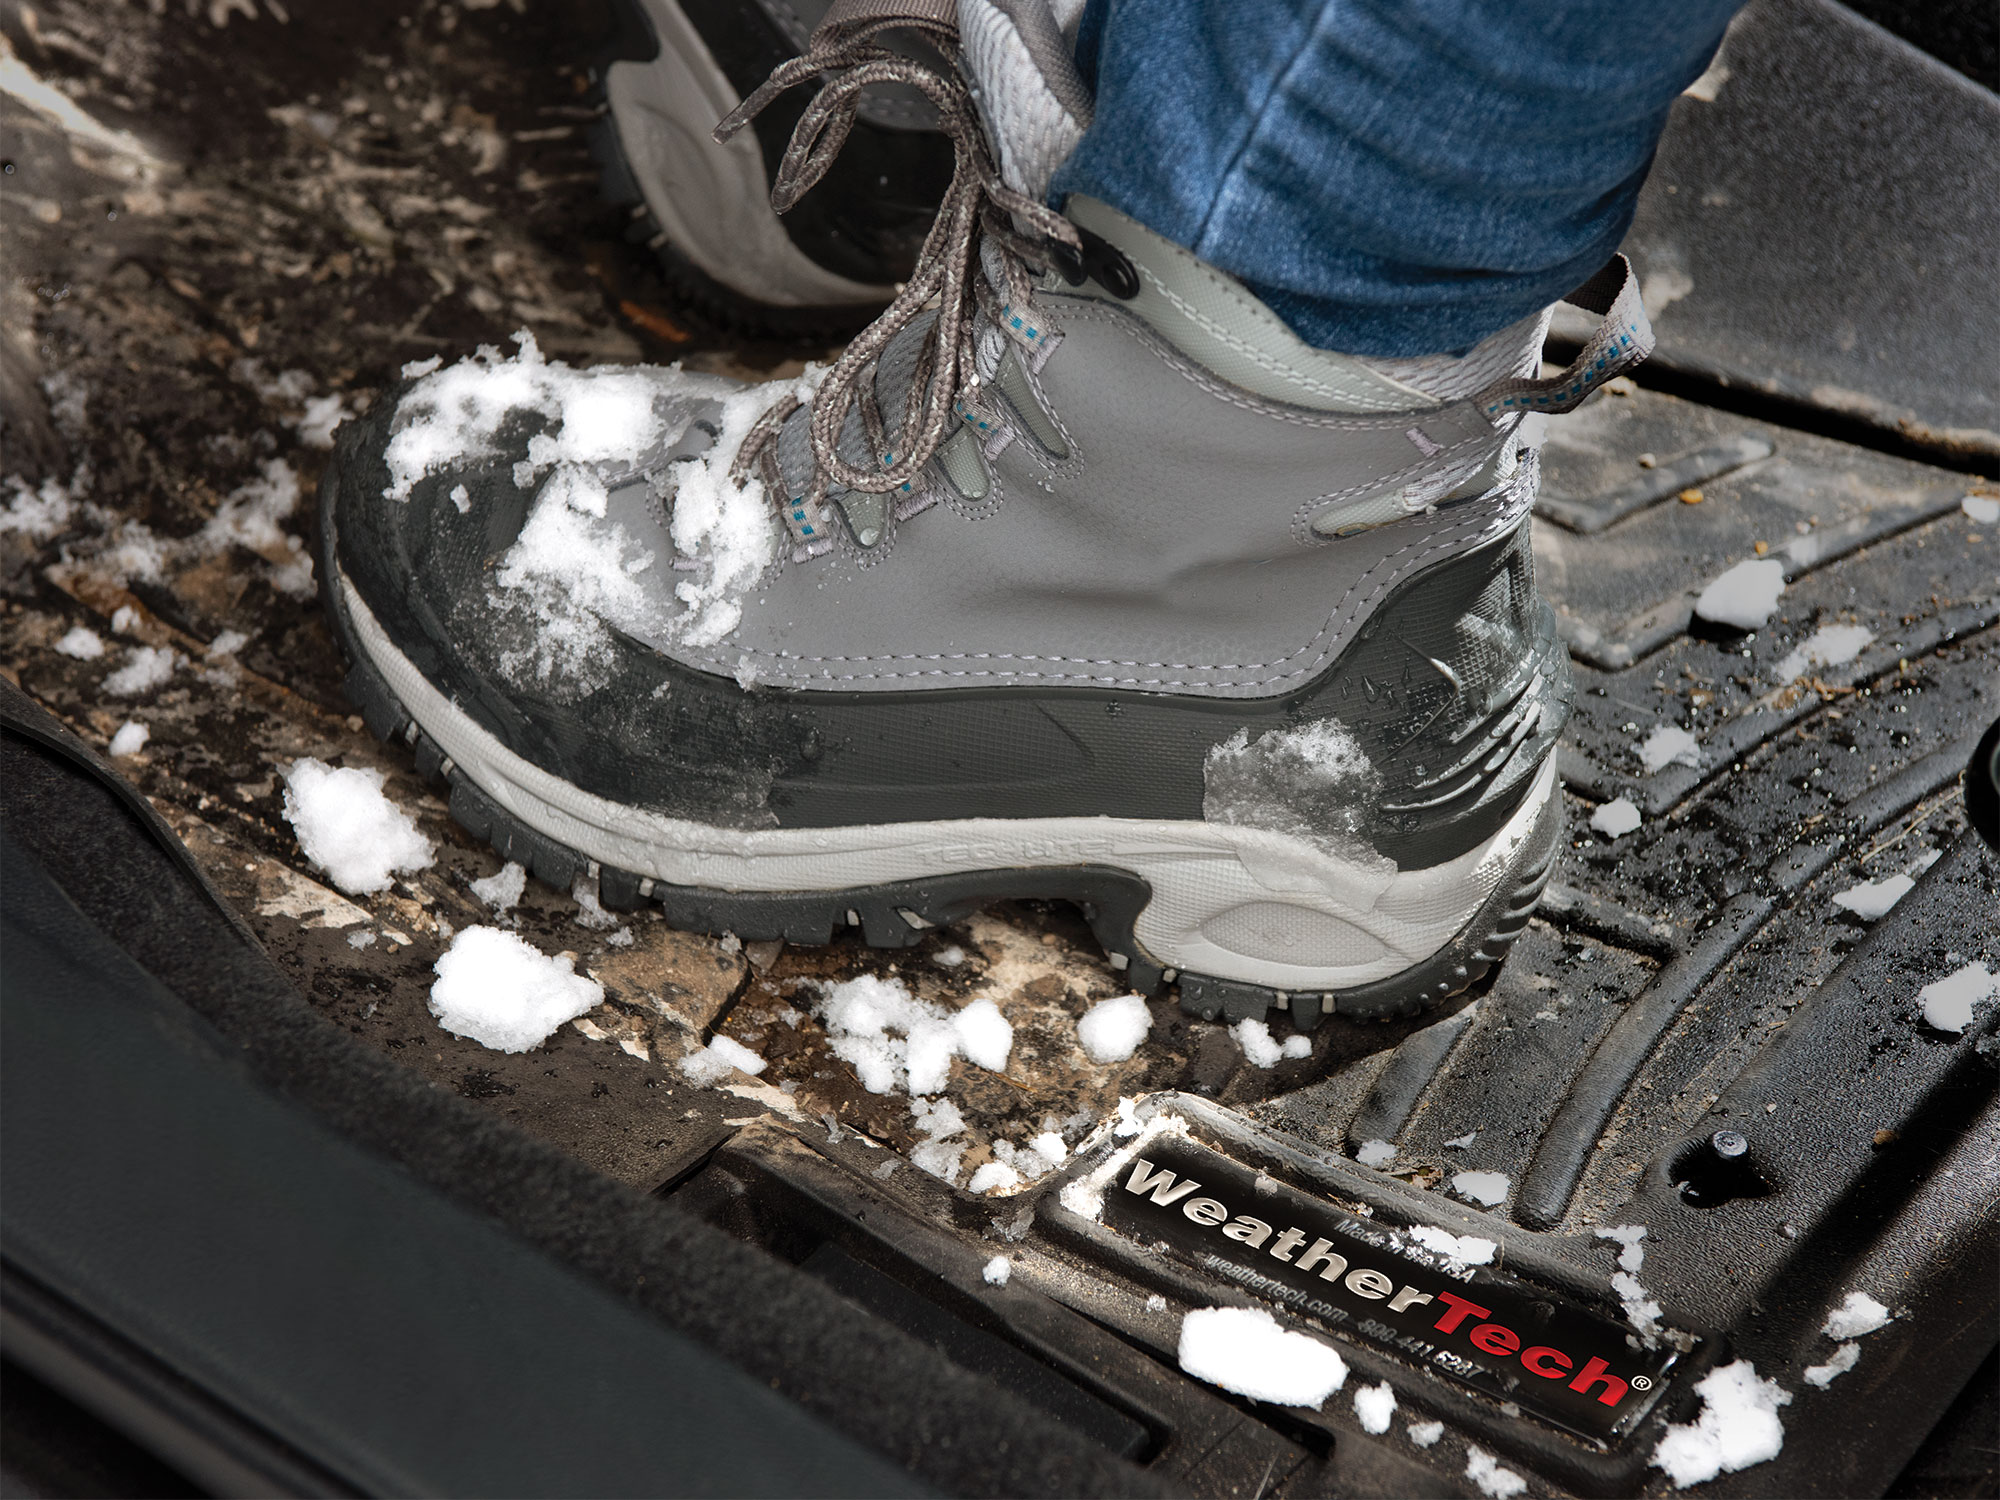 How to Clean Salt from Car Floor Mats